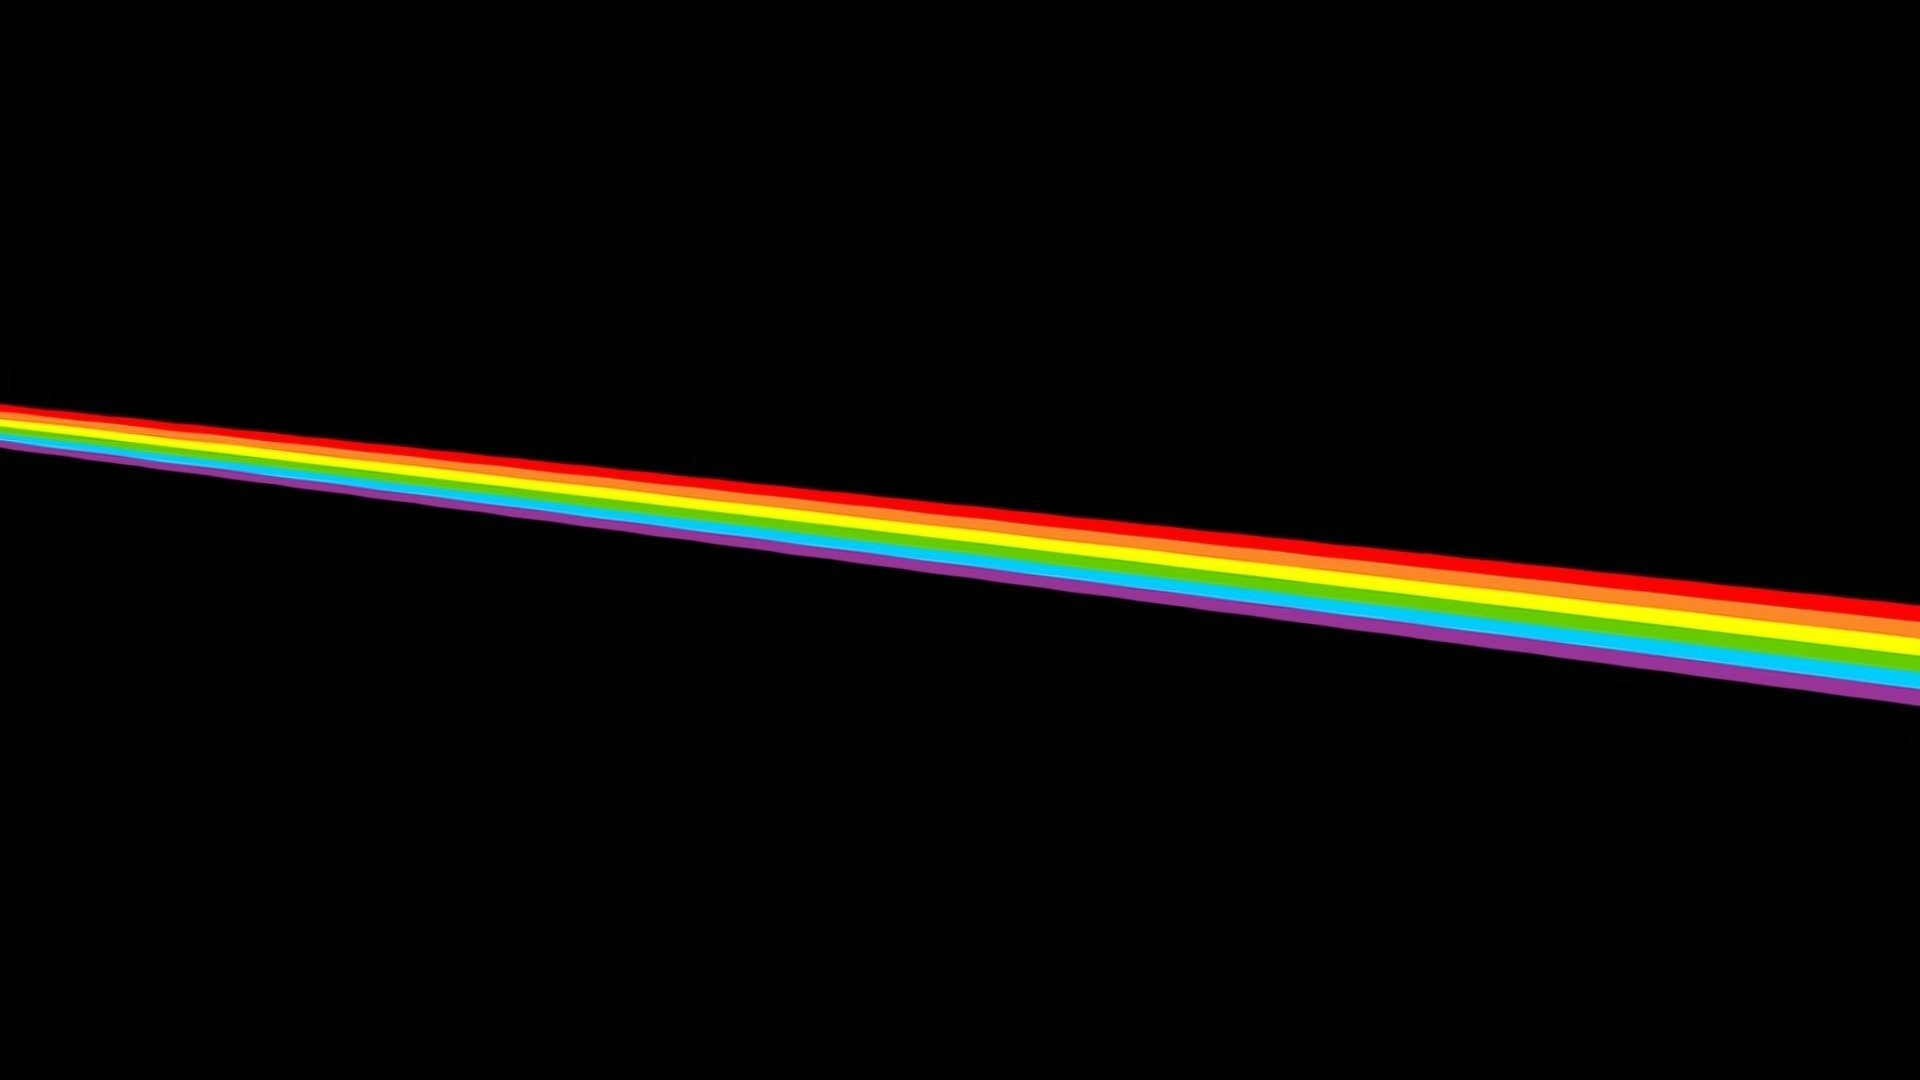 3840x2160 Preview wallpaper pink floyd, planets, energy, man, light 3840x2160